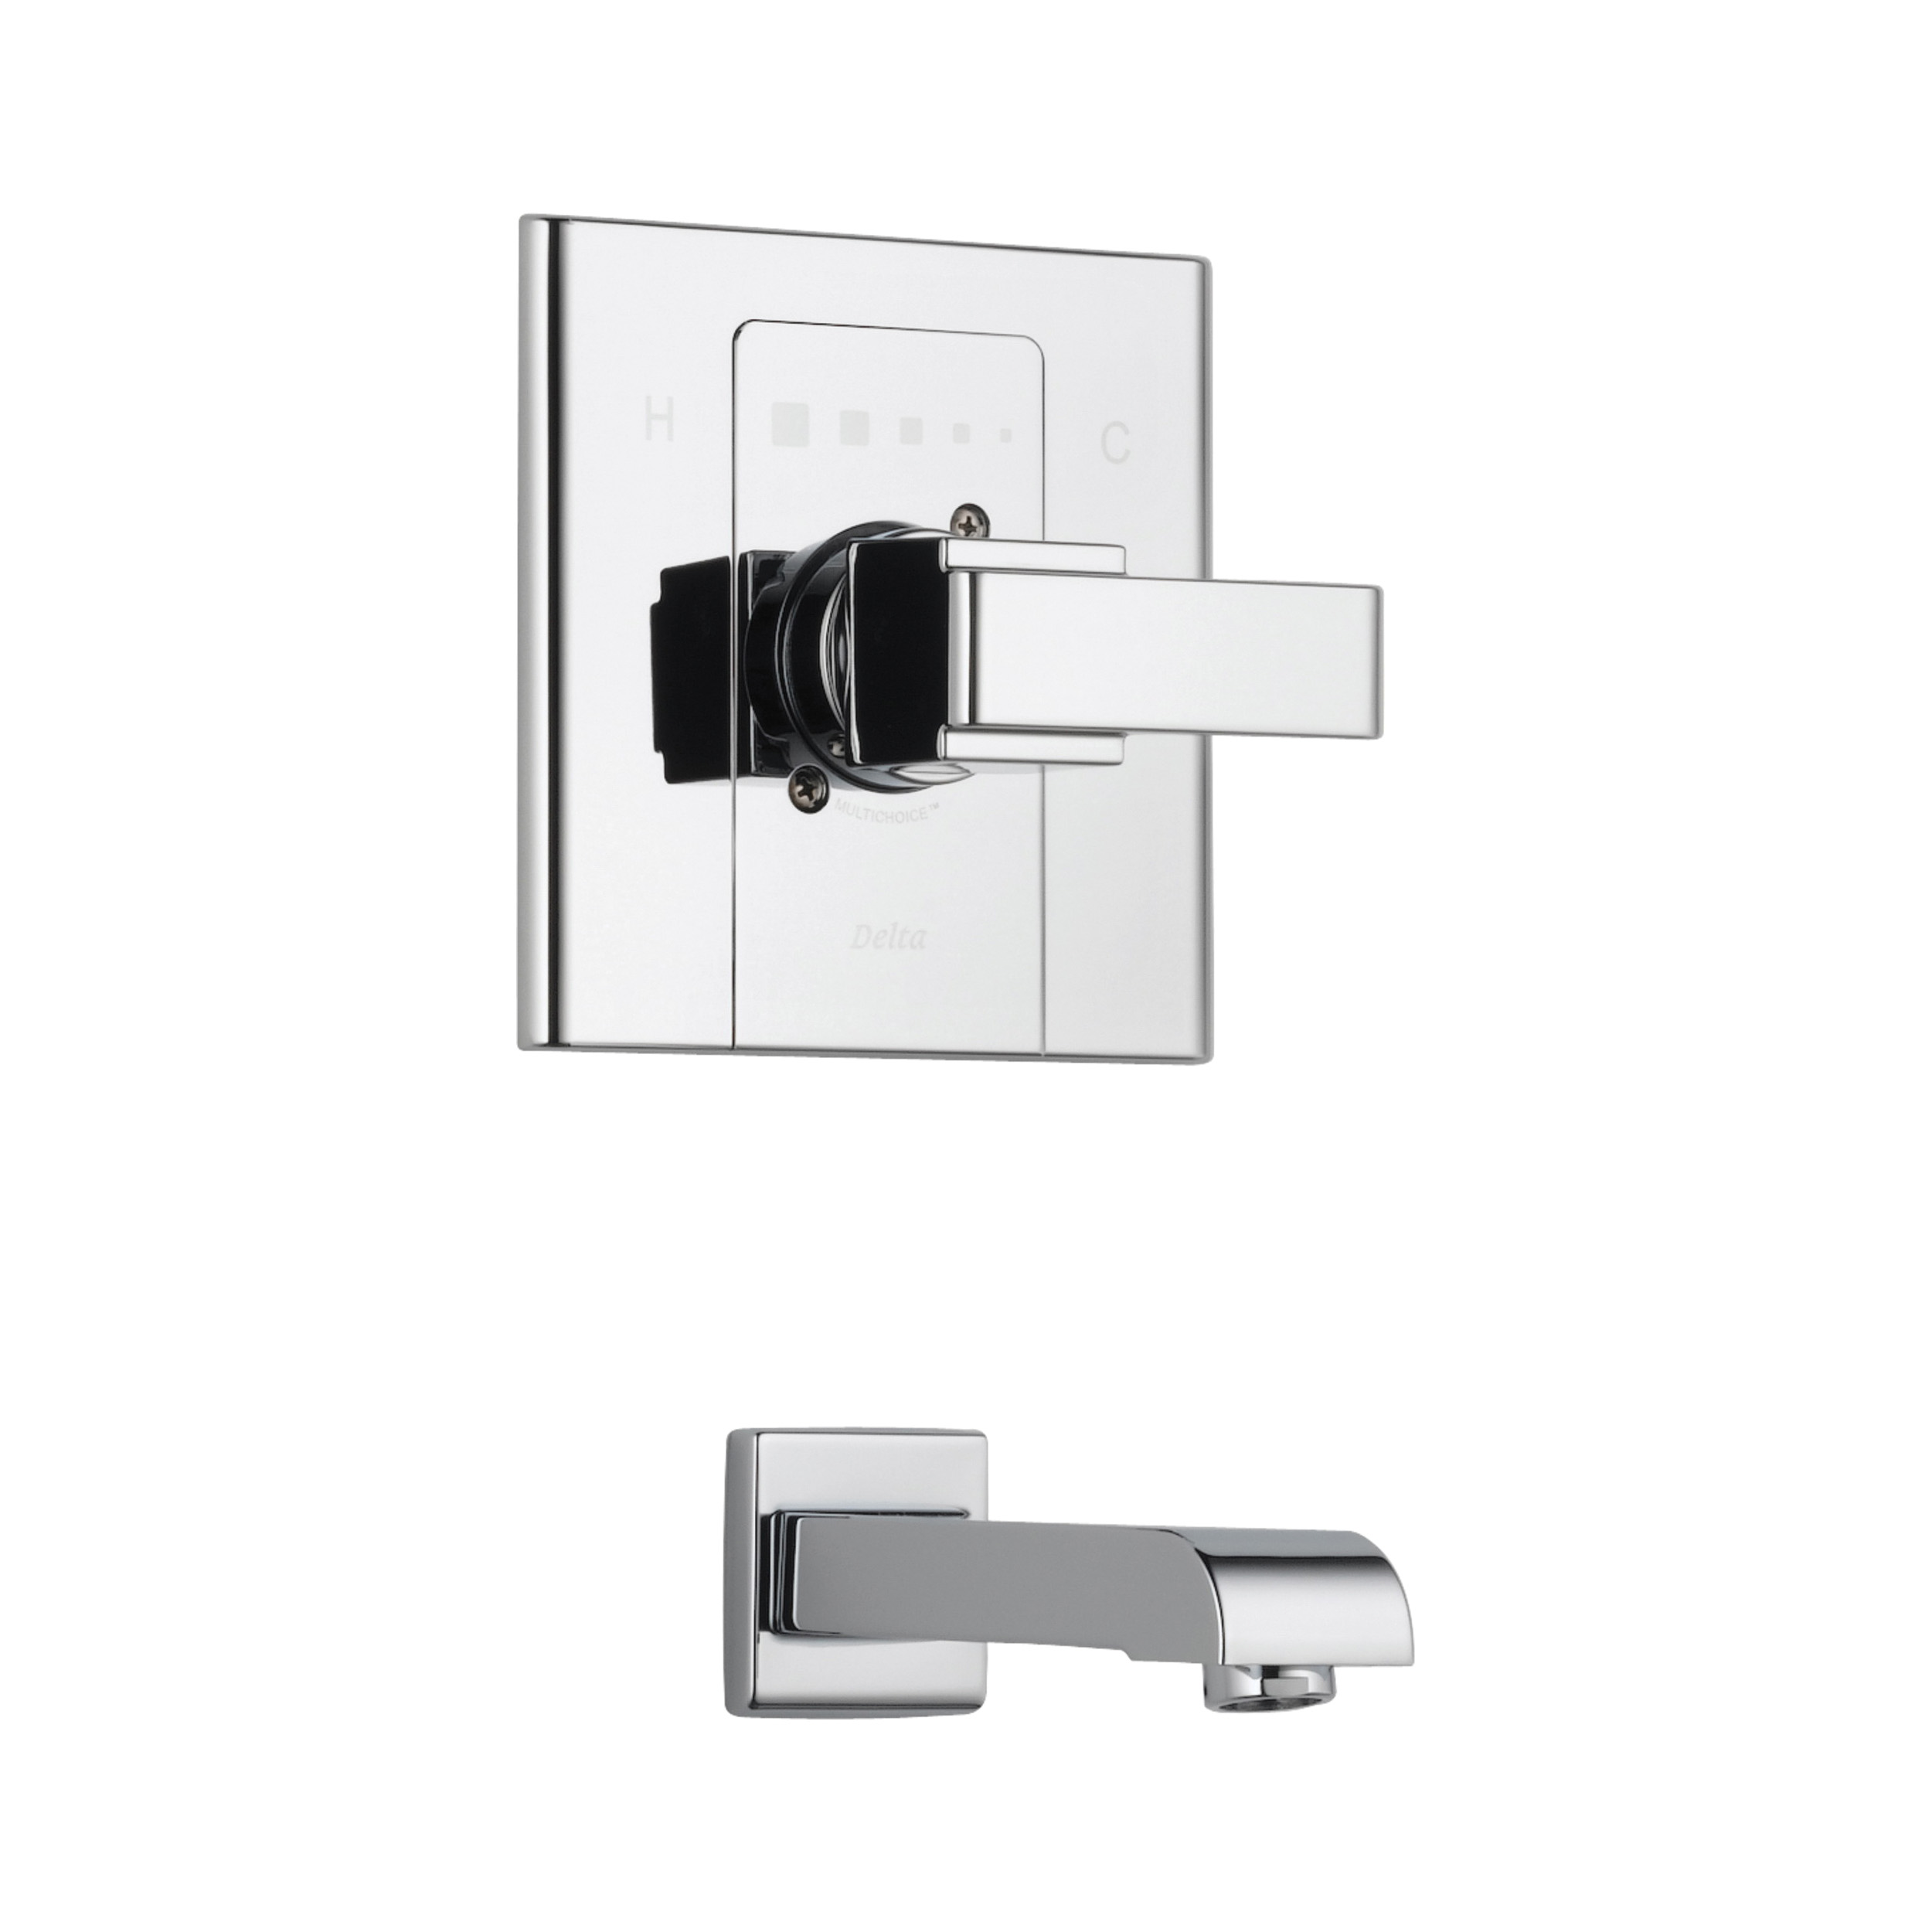 DELTA® T14186 Monitor® 14 1-Function Wall Mount Tub Trim, Arzo®, 6 gpm Flow Rate, Polished Chrome, 1 Handles, Domestic, Commercial